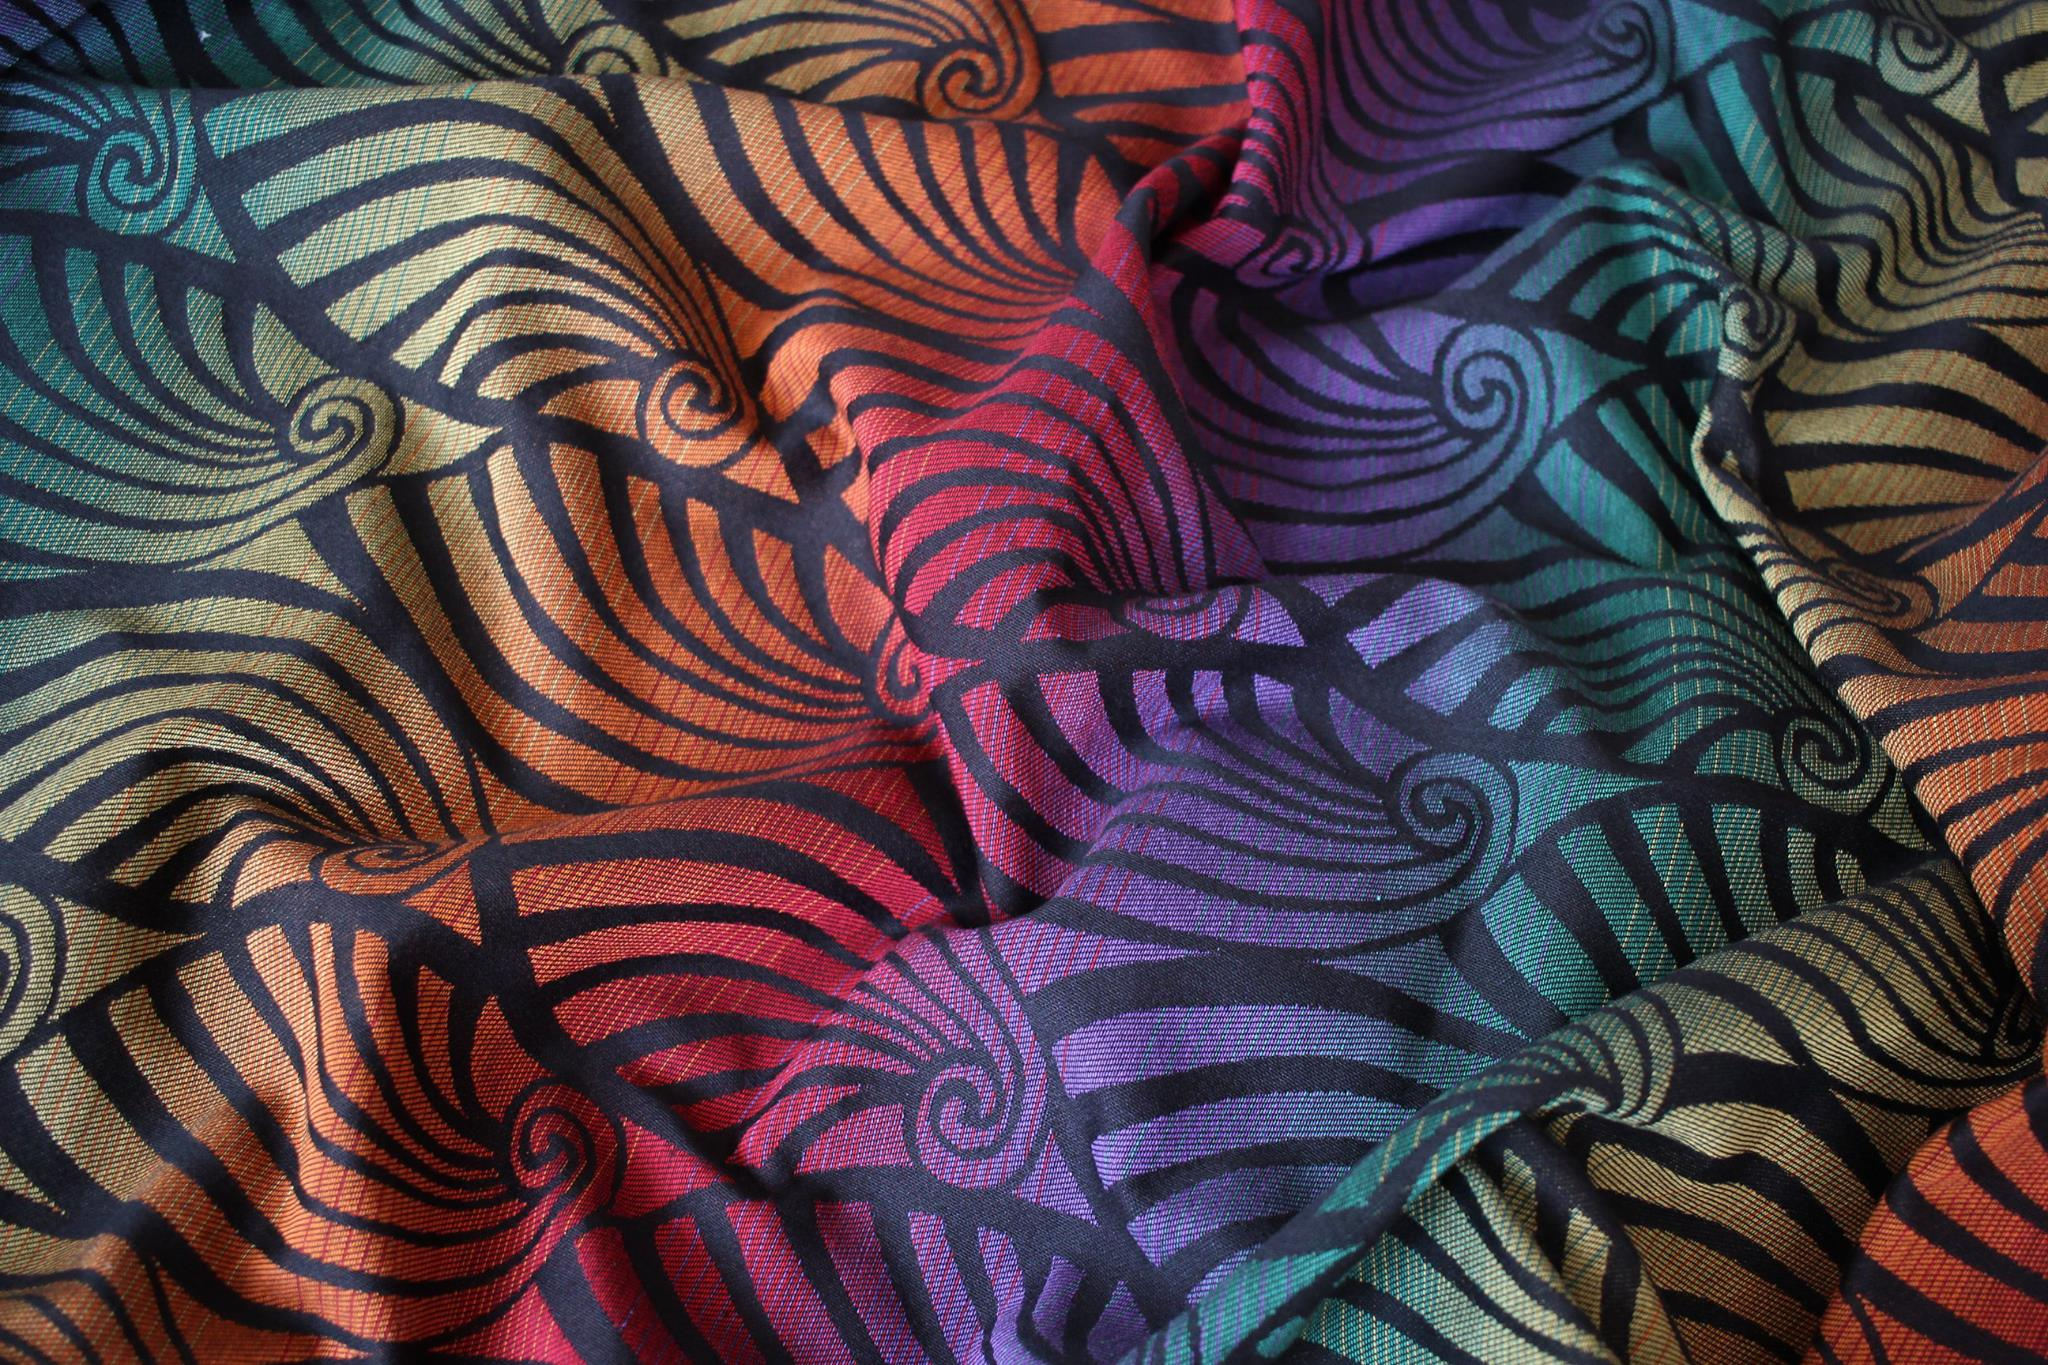 Yaro Slings Dandy Black Autumn Rainbow Wrap  Image